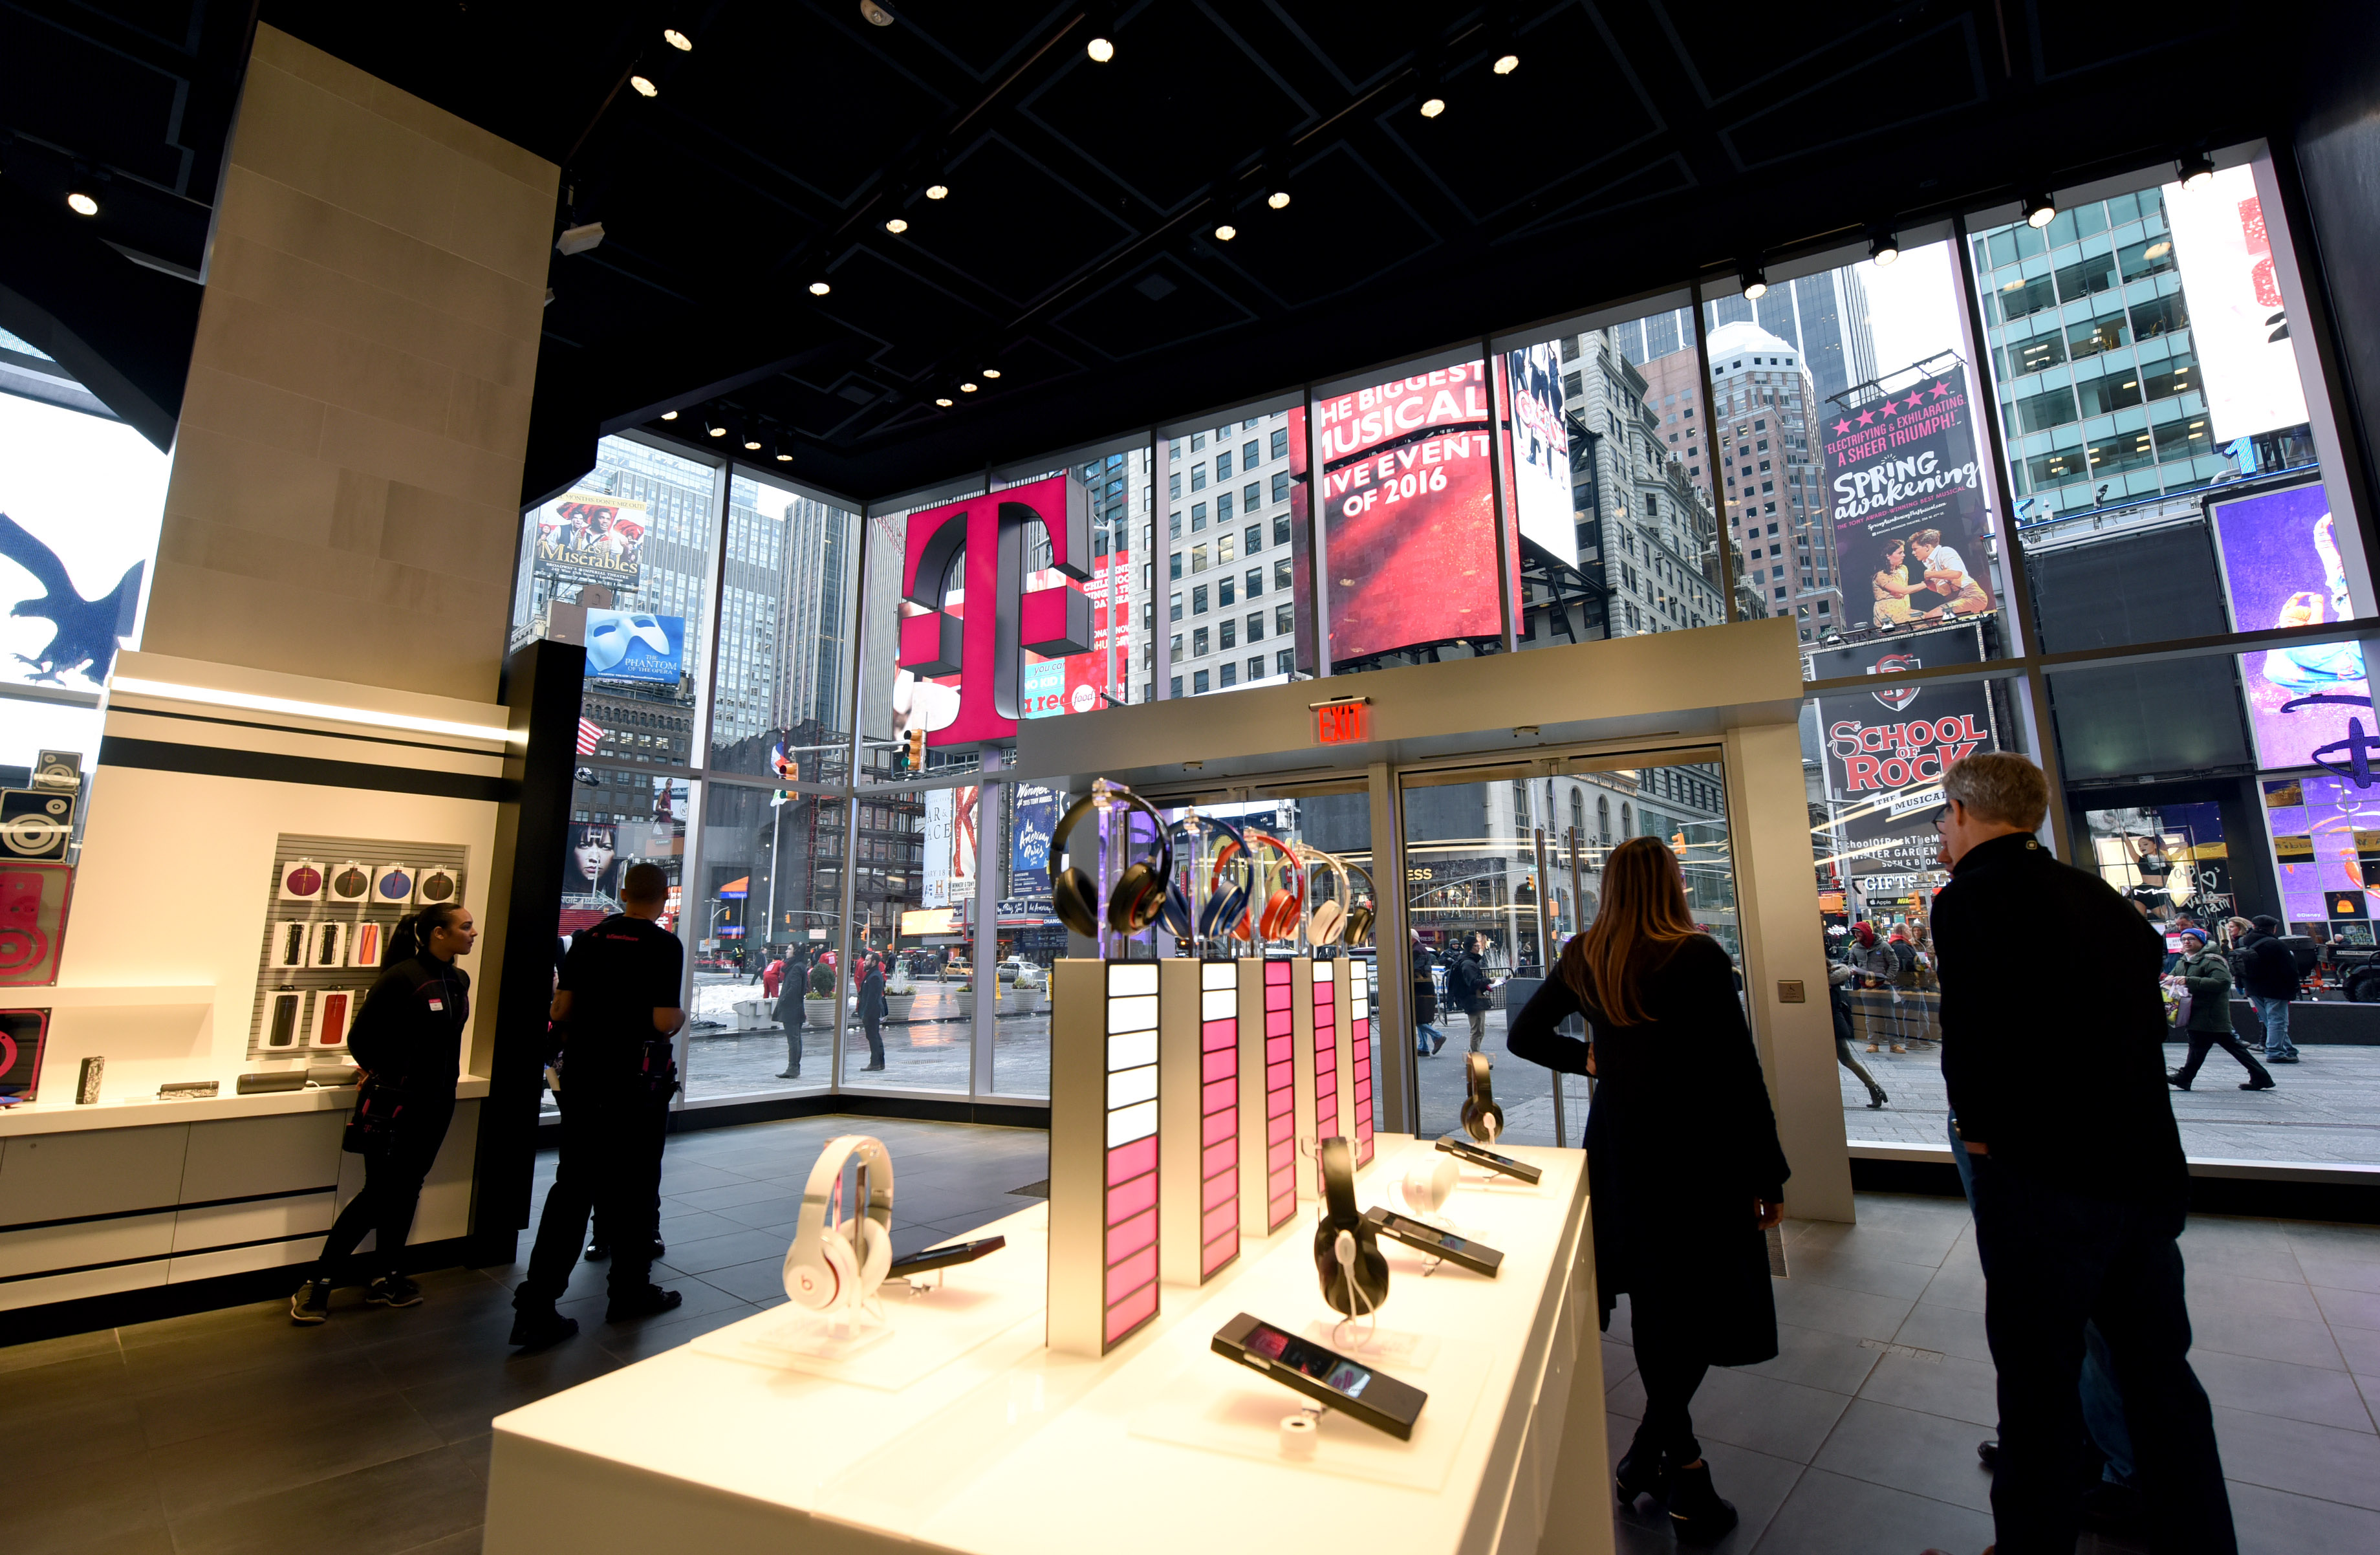 T-Mobile gives its current 2-line customers a free line of service, now this is awesome!